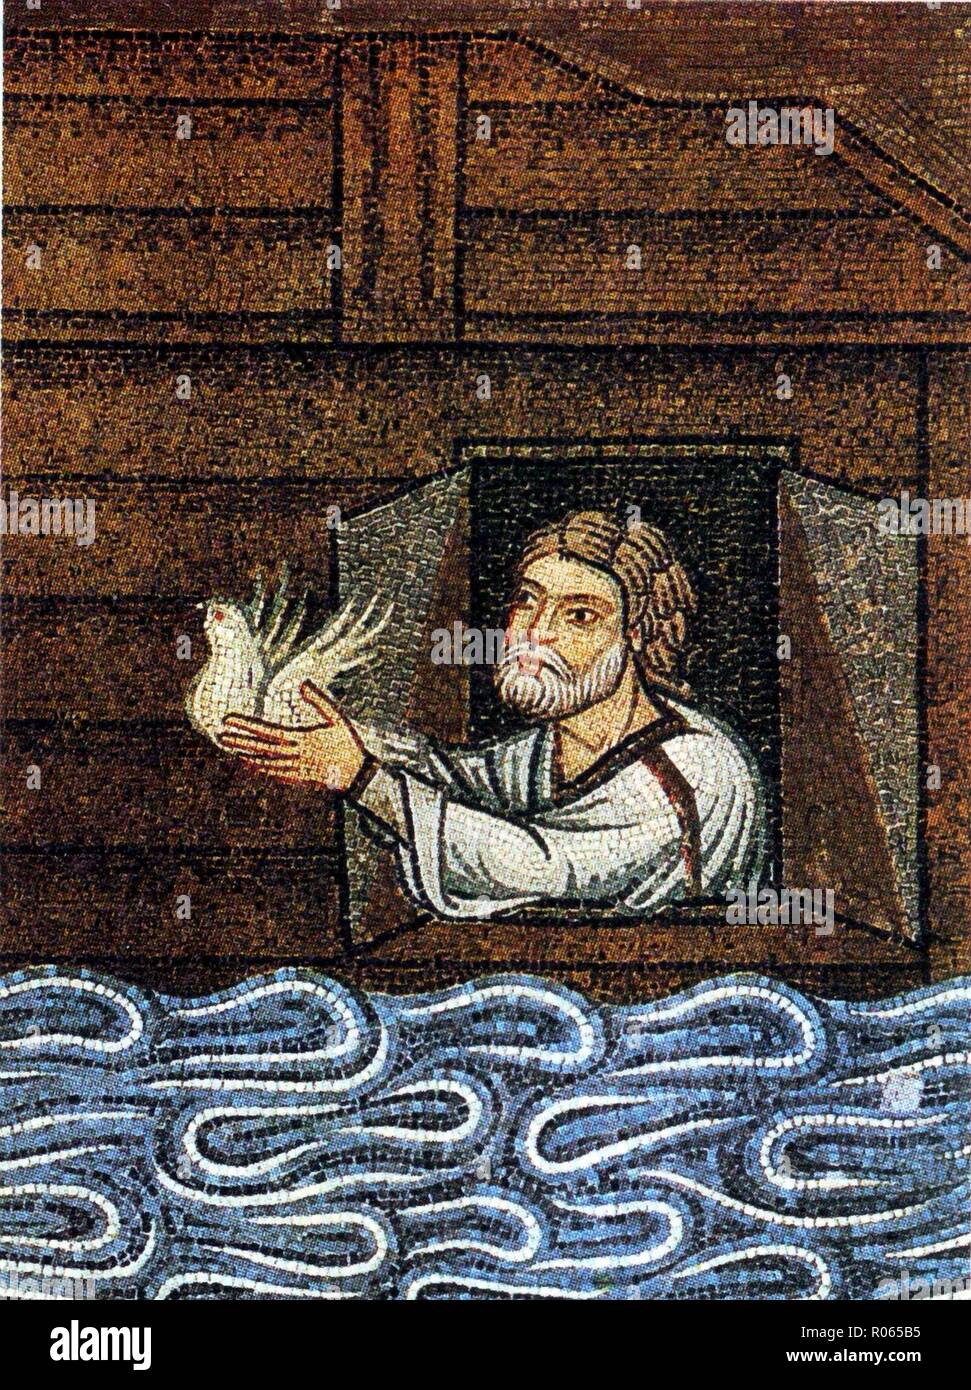 6347. Noah sending the dove,  detail from the 11th. C. mosaic at St. Mark's Basilica in Venice, Italy Stock Photo